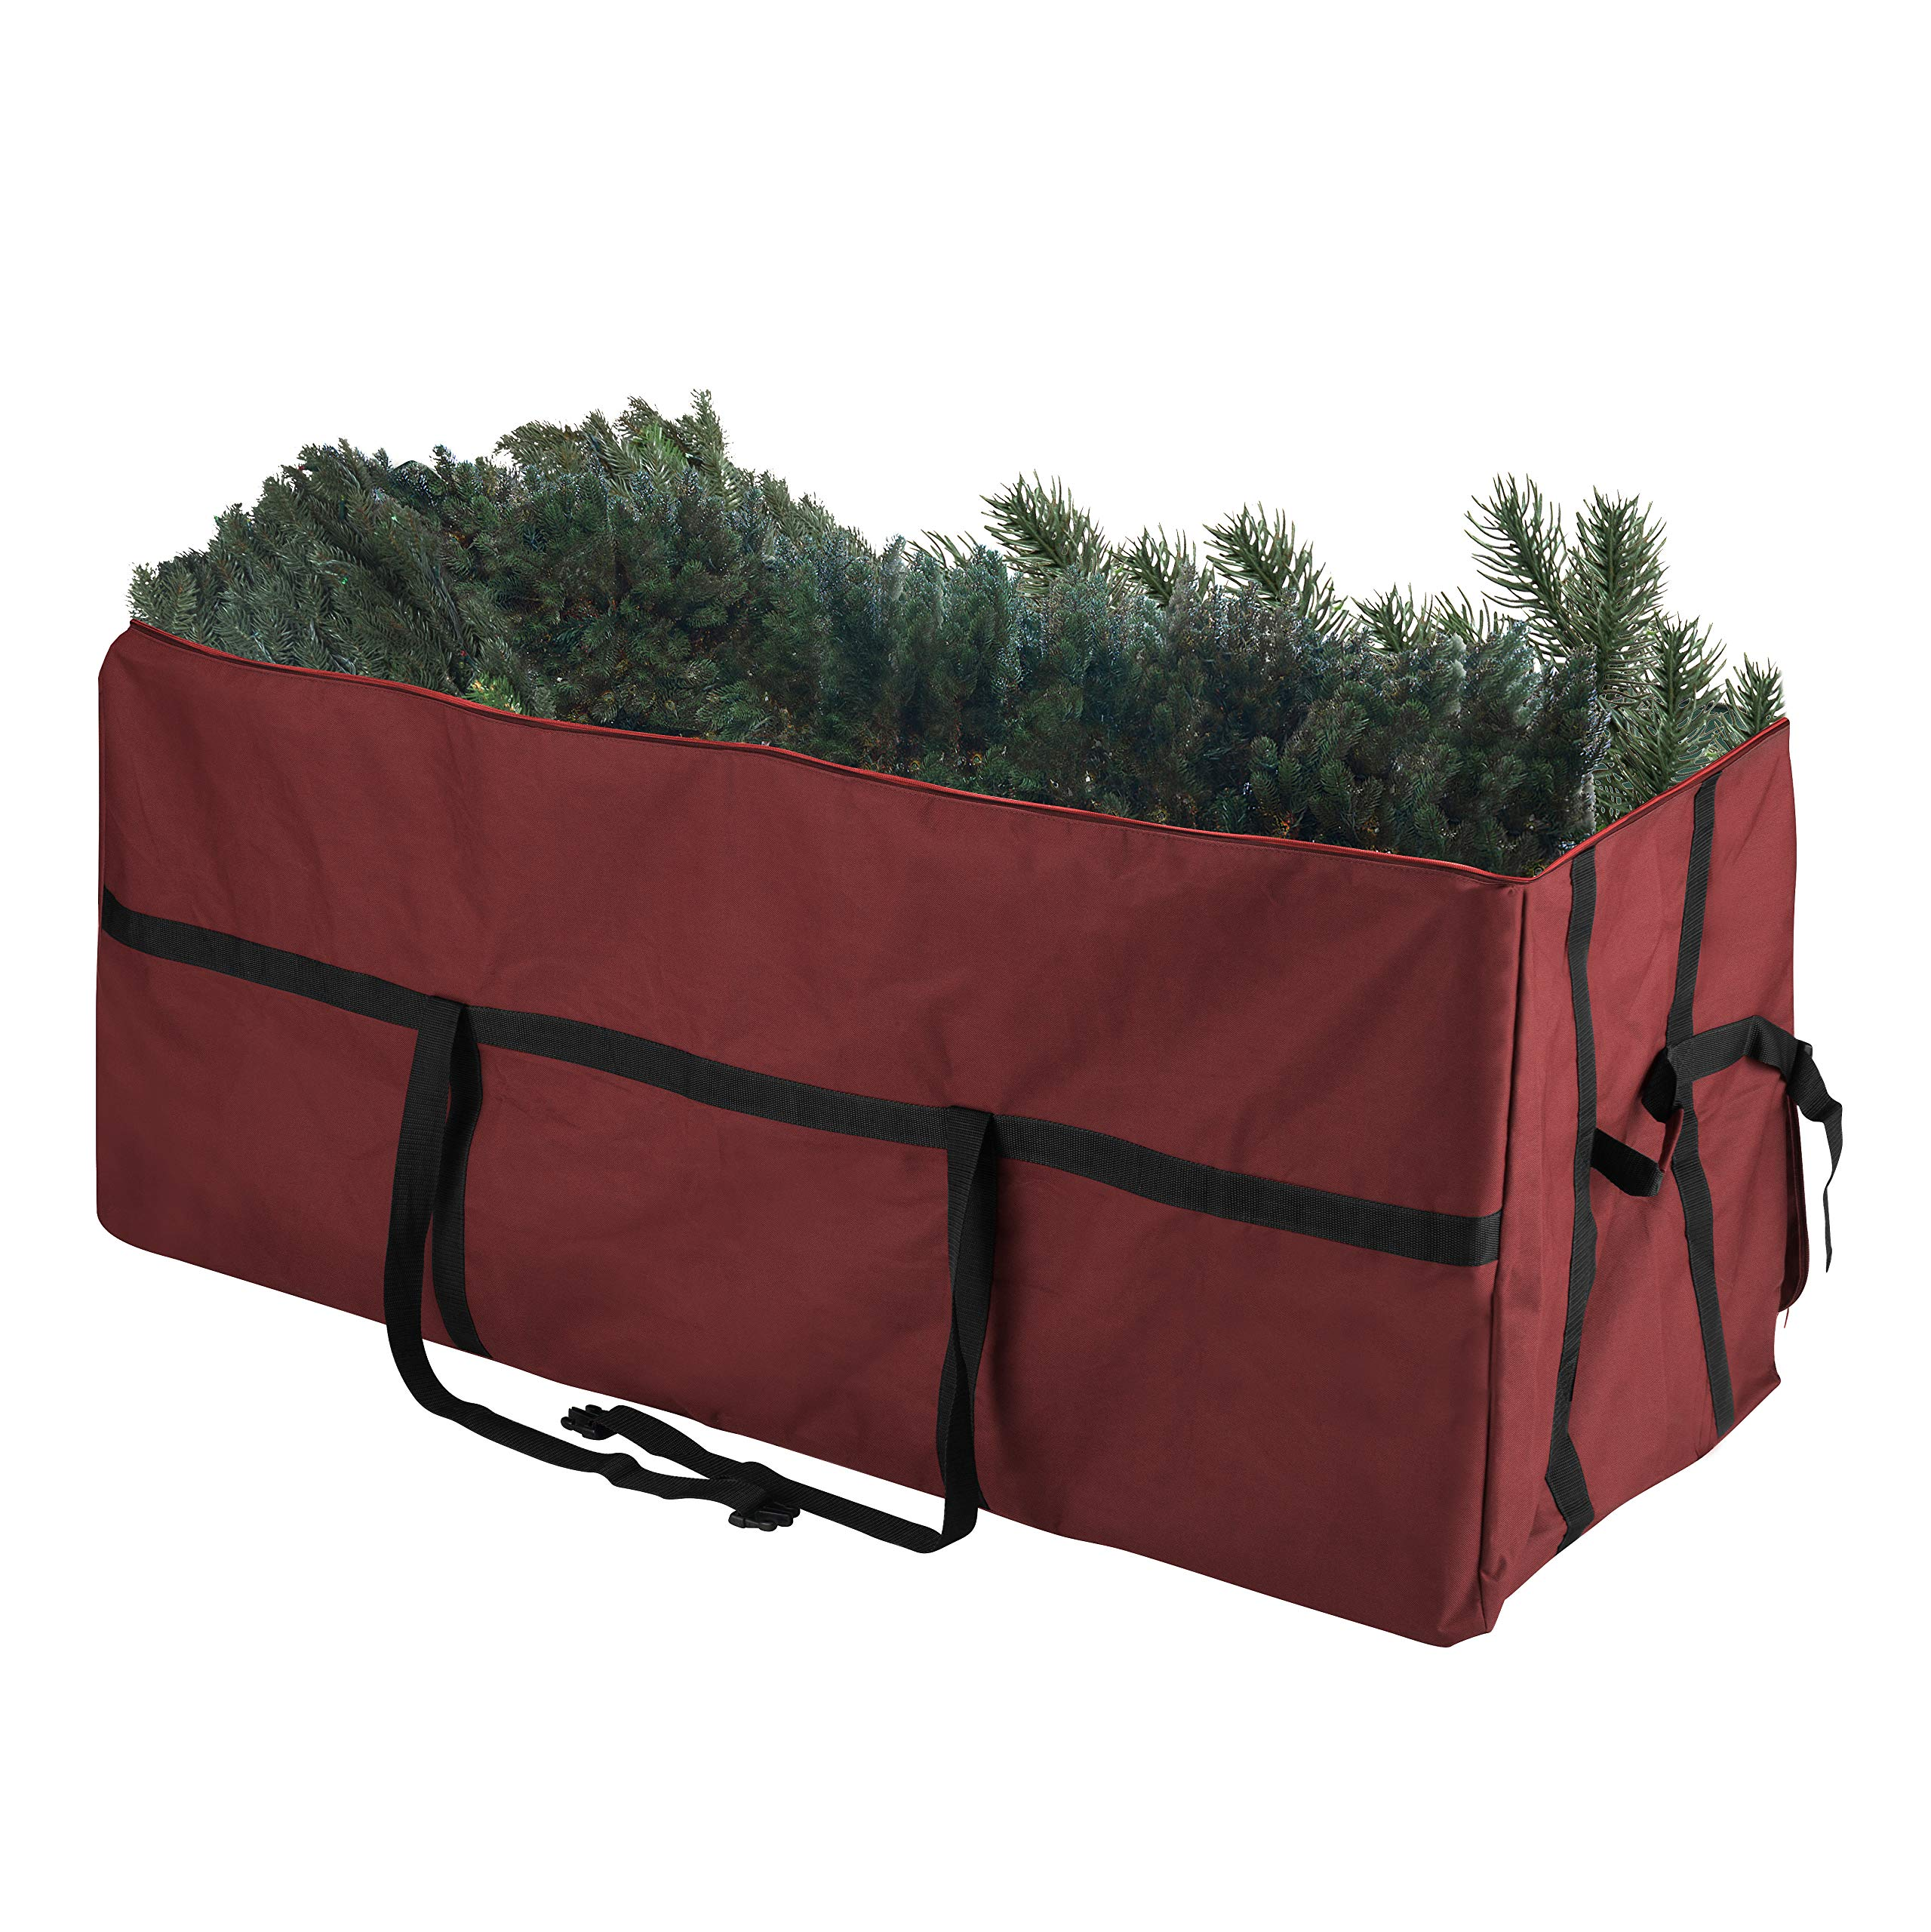 Elf Stor 83-DT5055 Heavy Duty Canvas Christmas Storage Bag Large for 7.5 Foot Tree, Burgundy